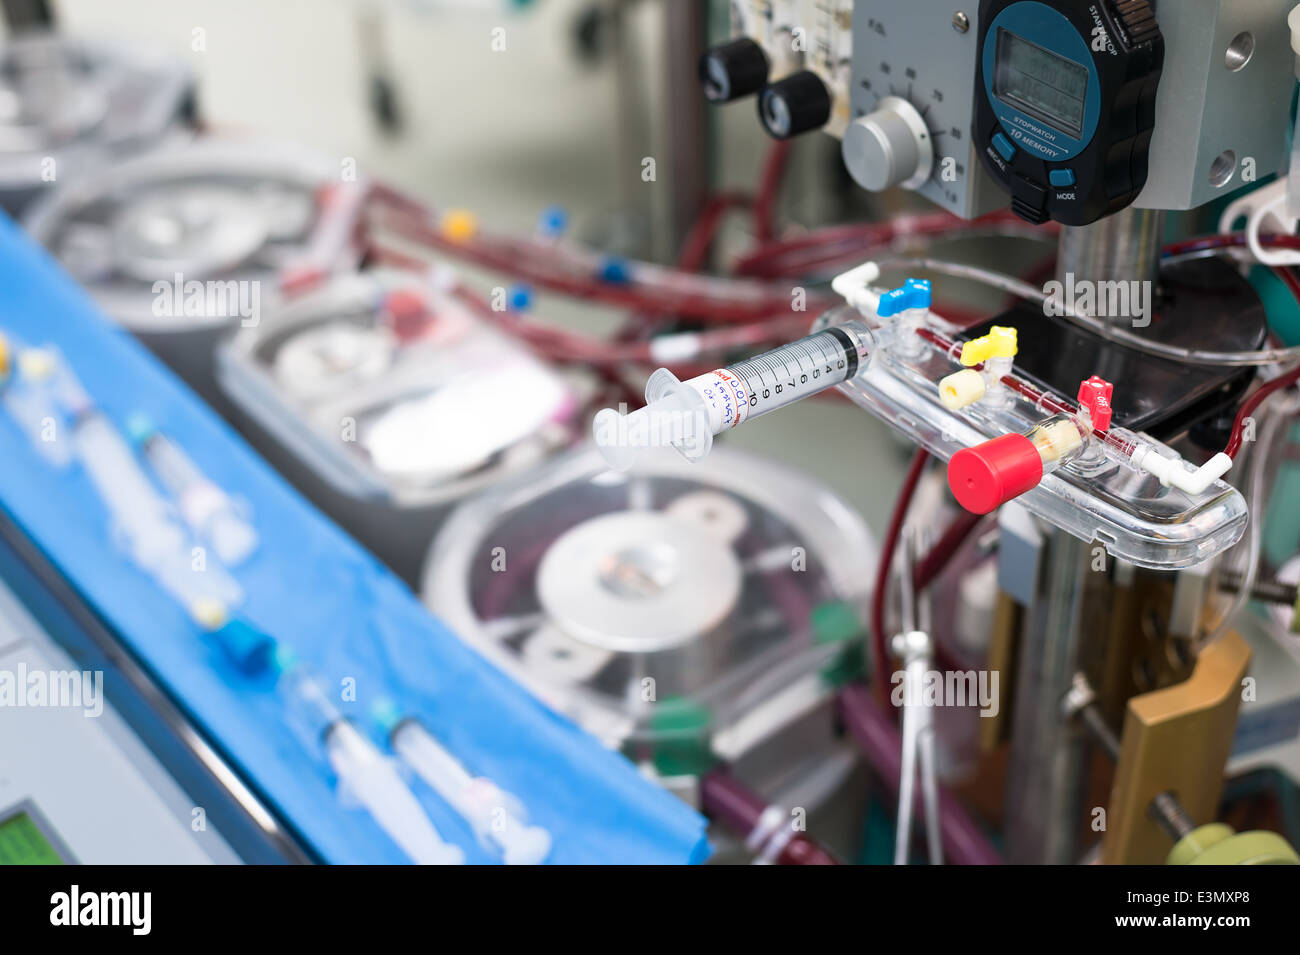 Part of heart lung machine - Stock Image